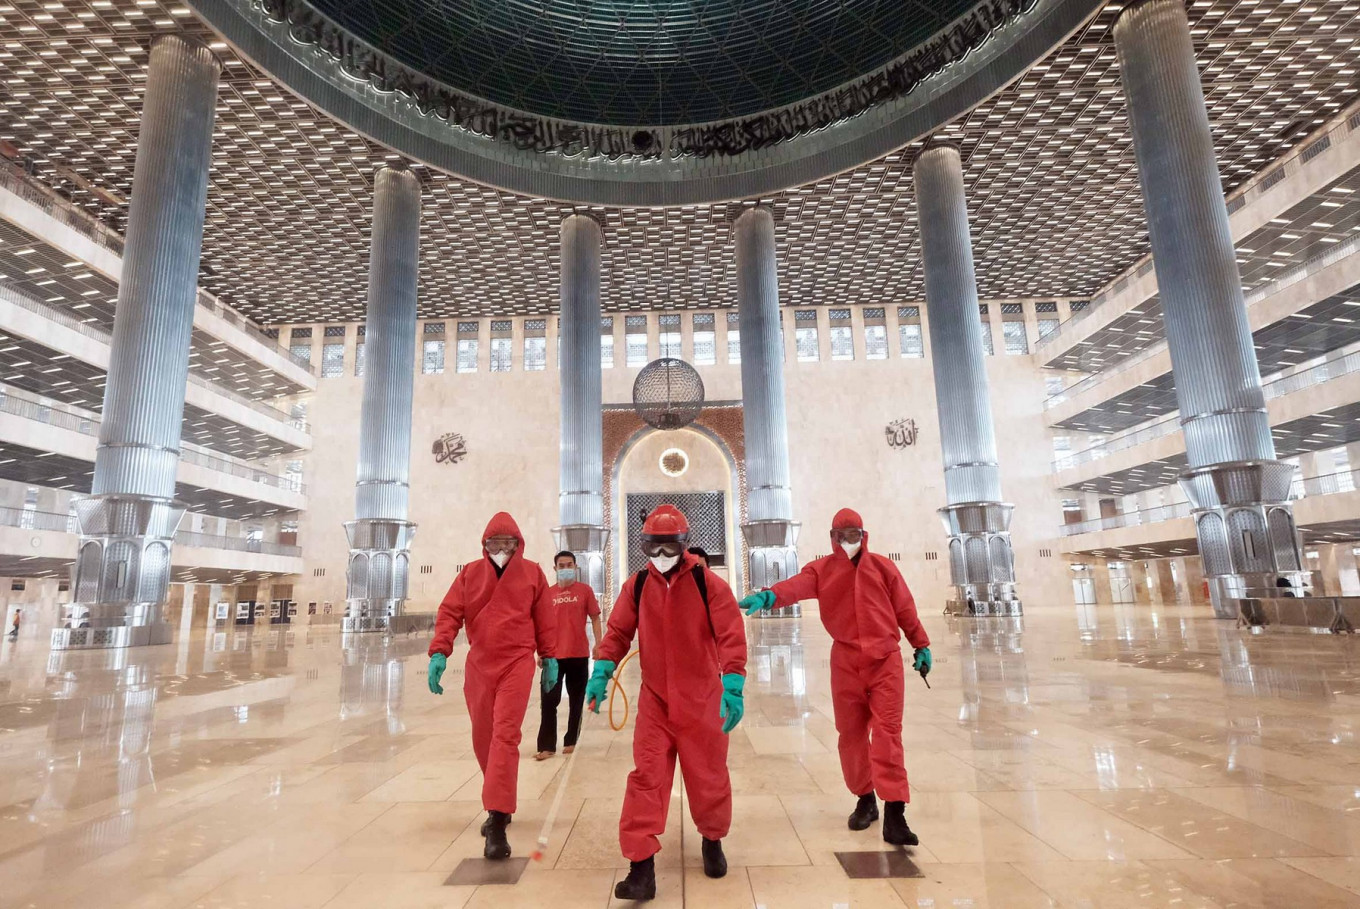 No Idul Adha prayers at Istiqlal amid COVID-19 concerns, ministry says